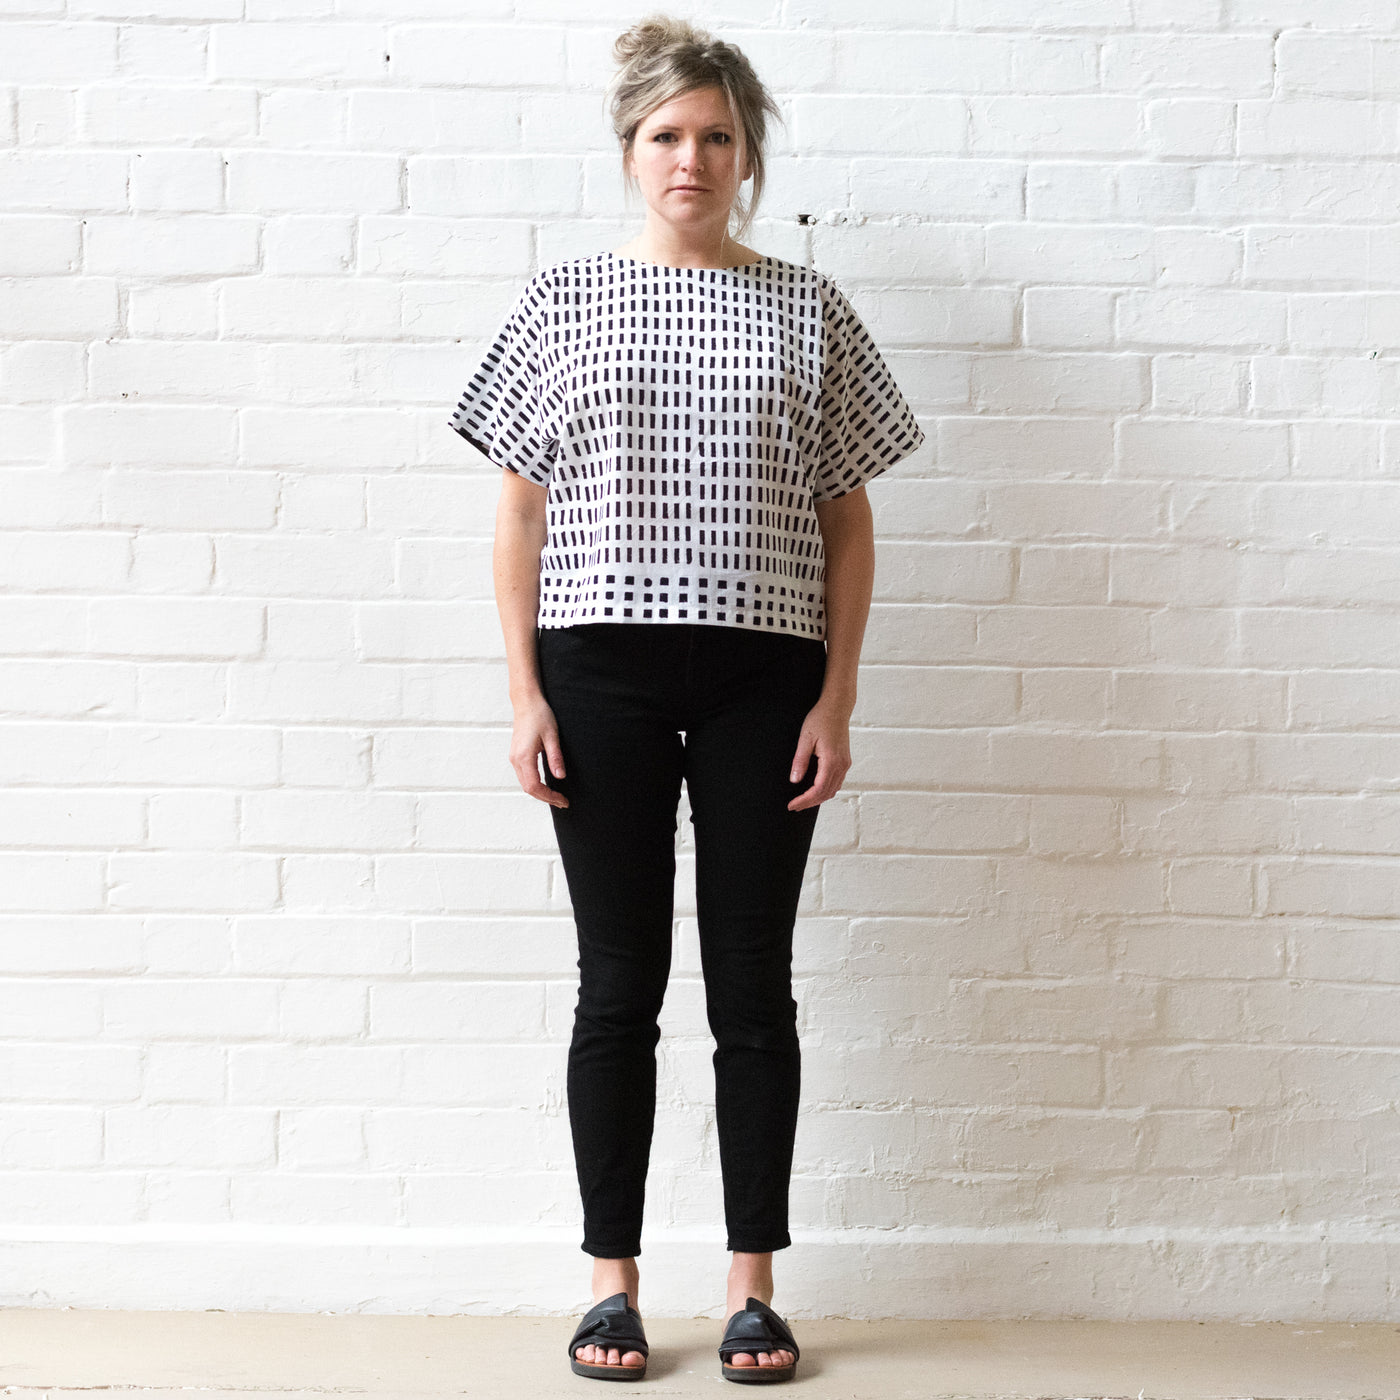 Black and white random print T shirt top